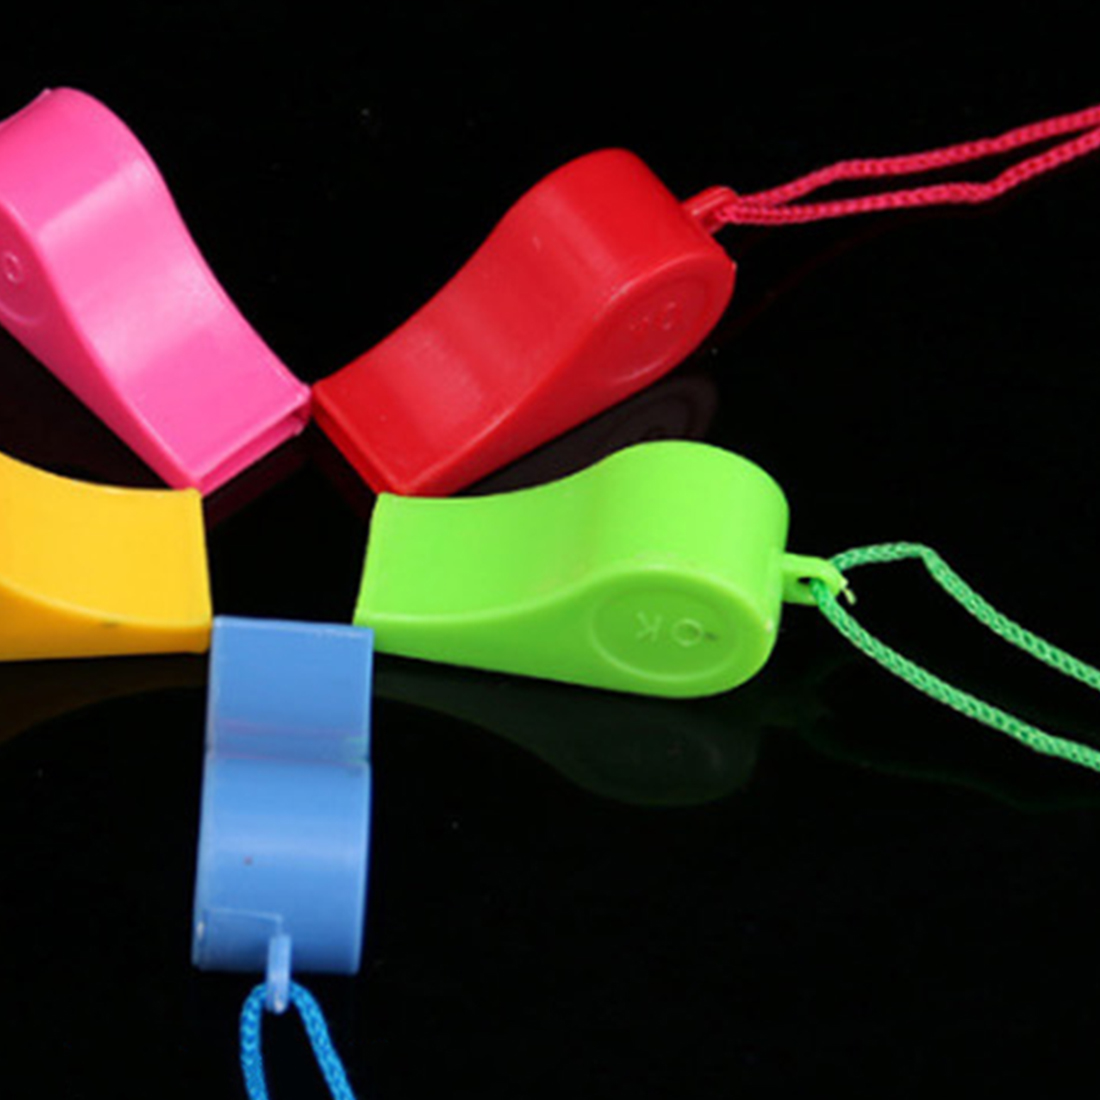 Soccer 24PCS Plastic Whistle With Lanyard Bor Boats Raft Party Sports Games Emergency Survival